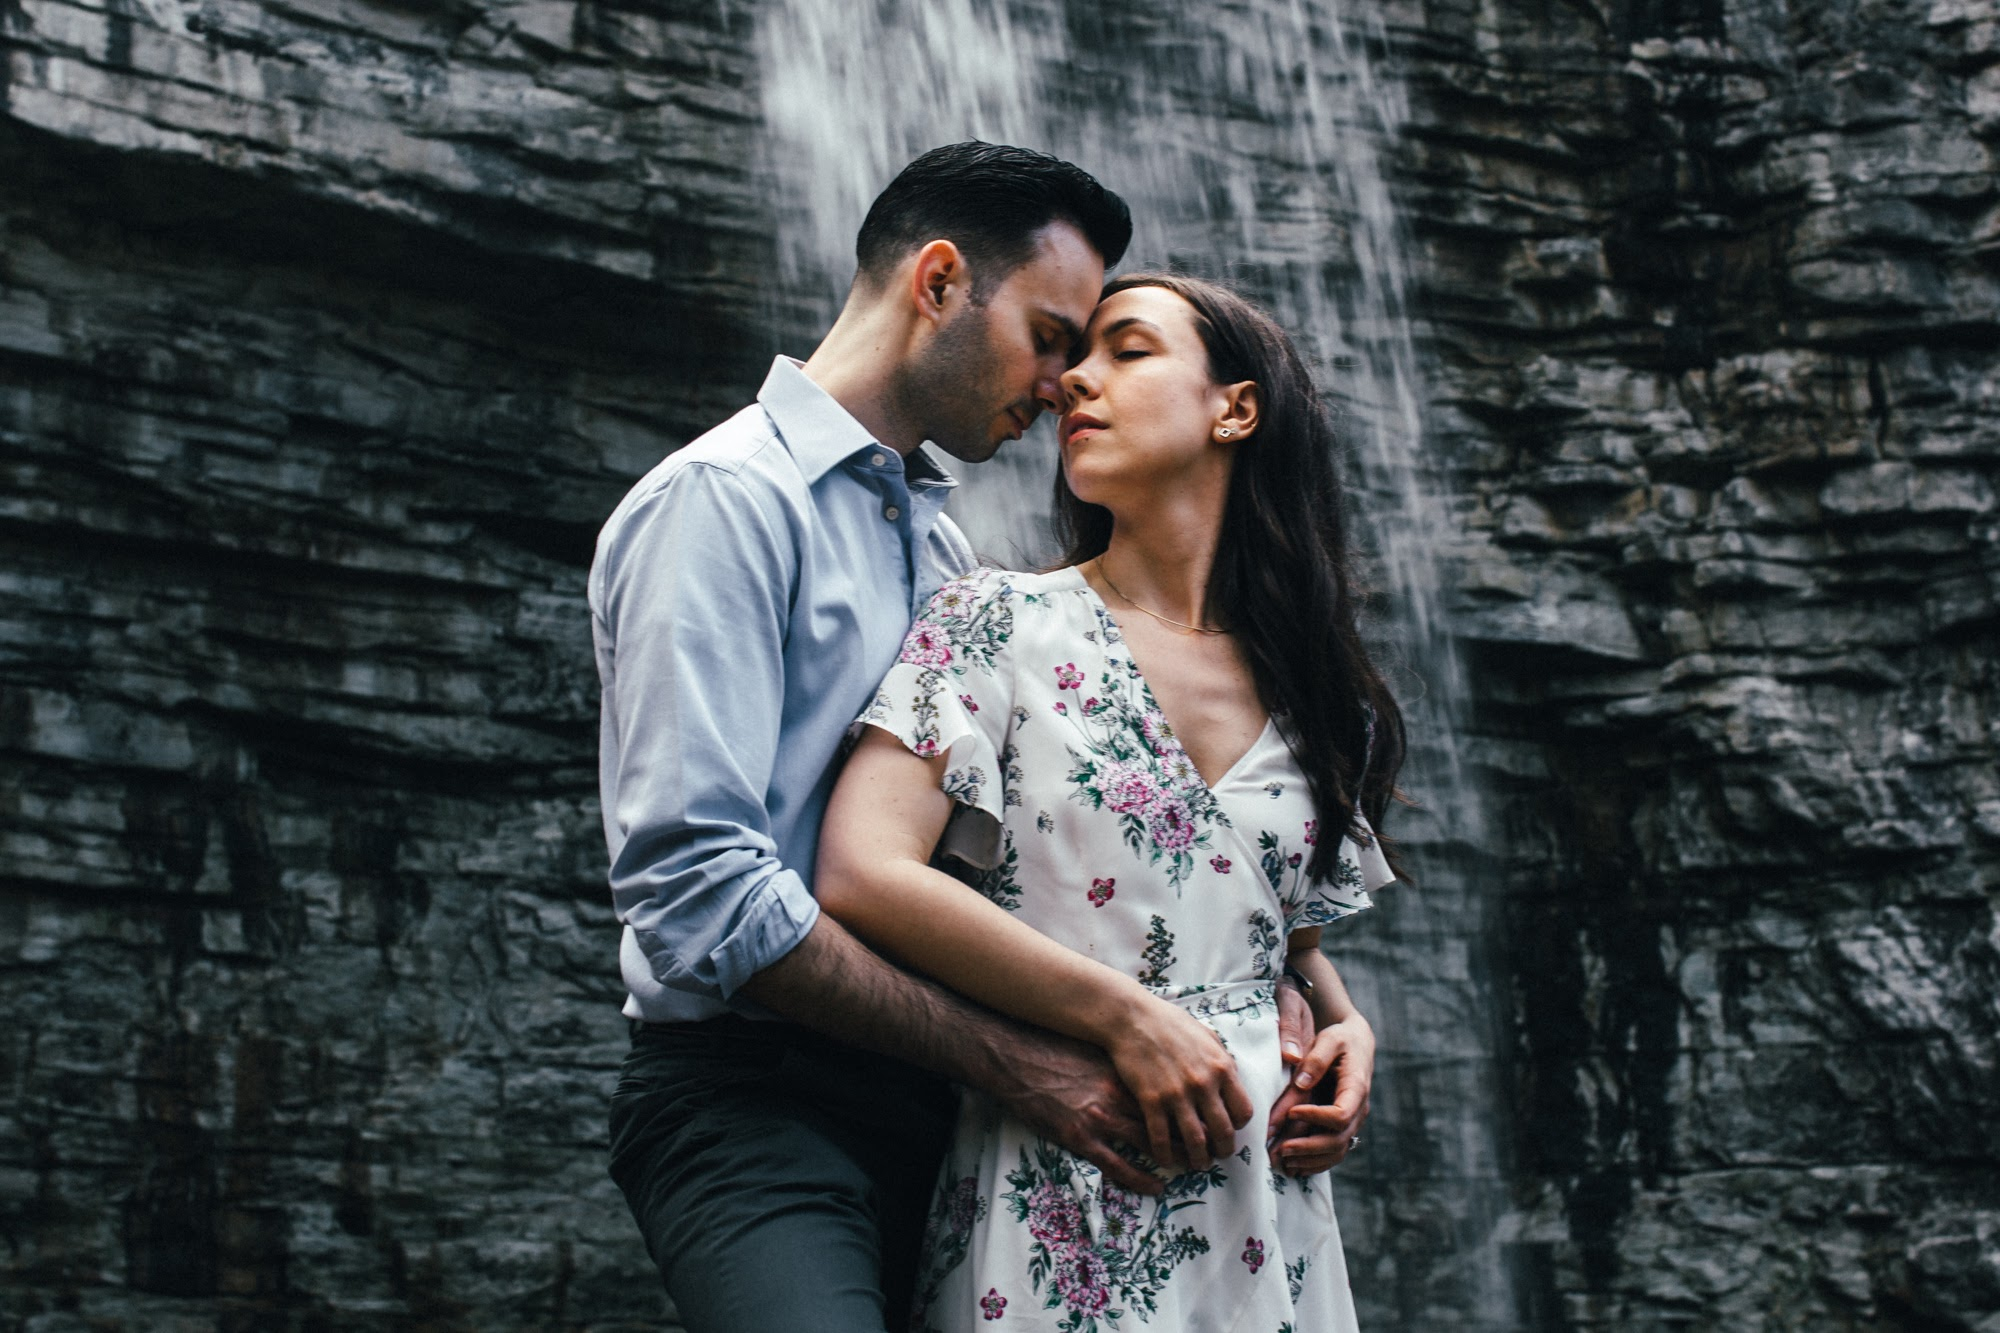 _B2C2826NYC wedding photography minnewaska state park hudson valley engagement.jpg